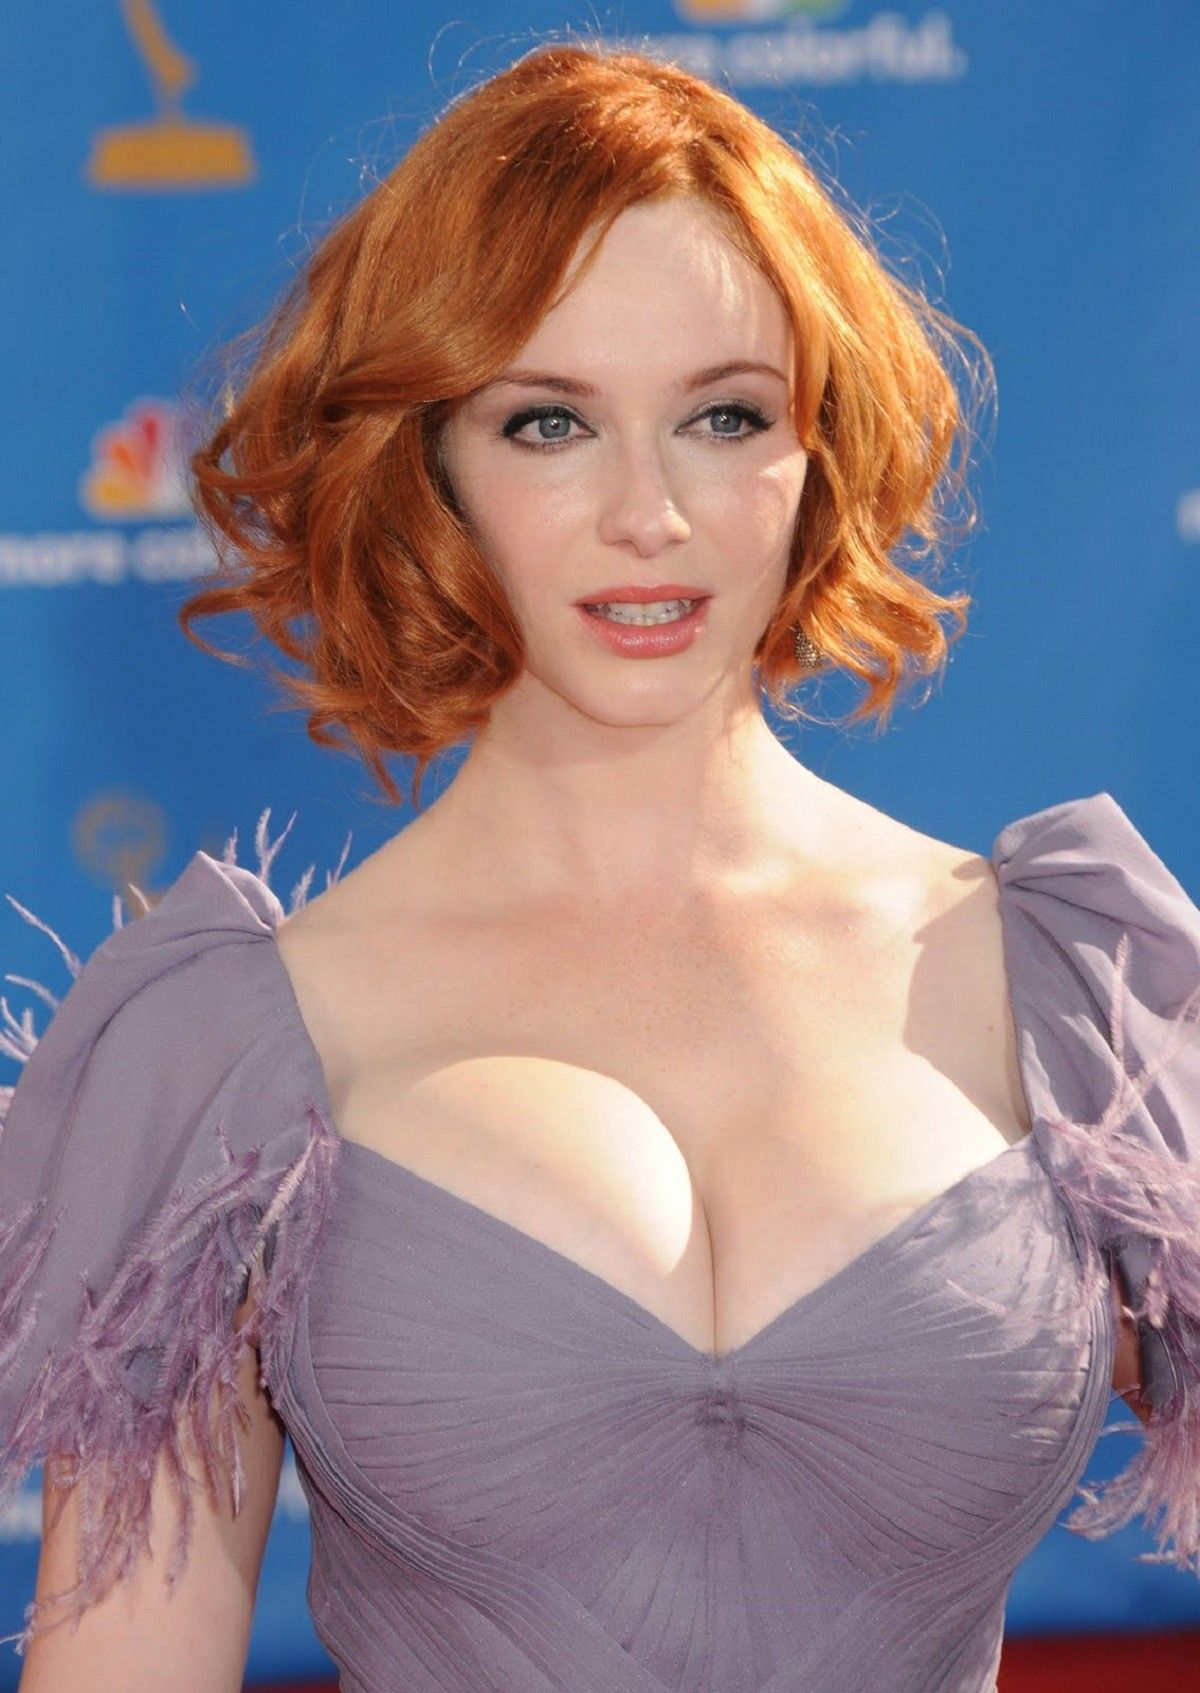 Leaked boobs Christina hendricks nude